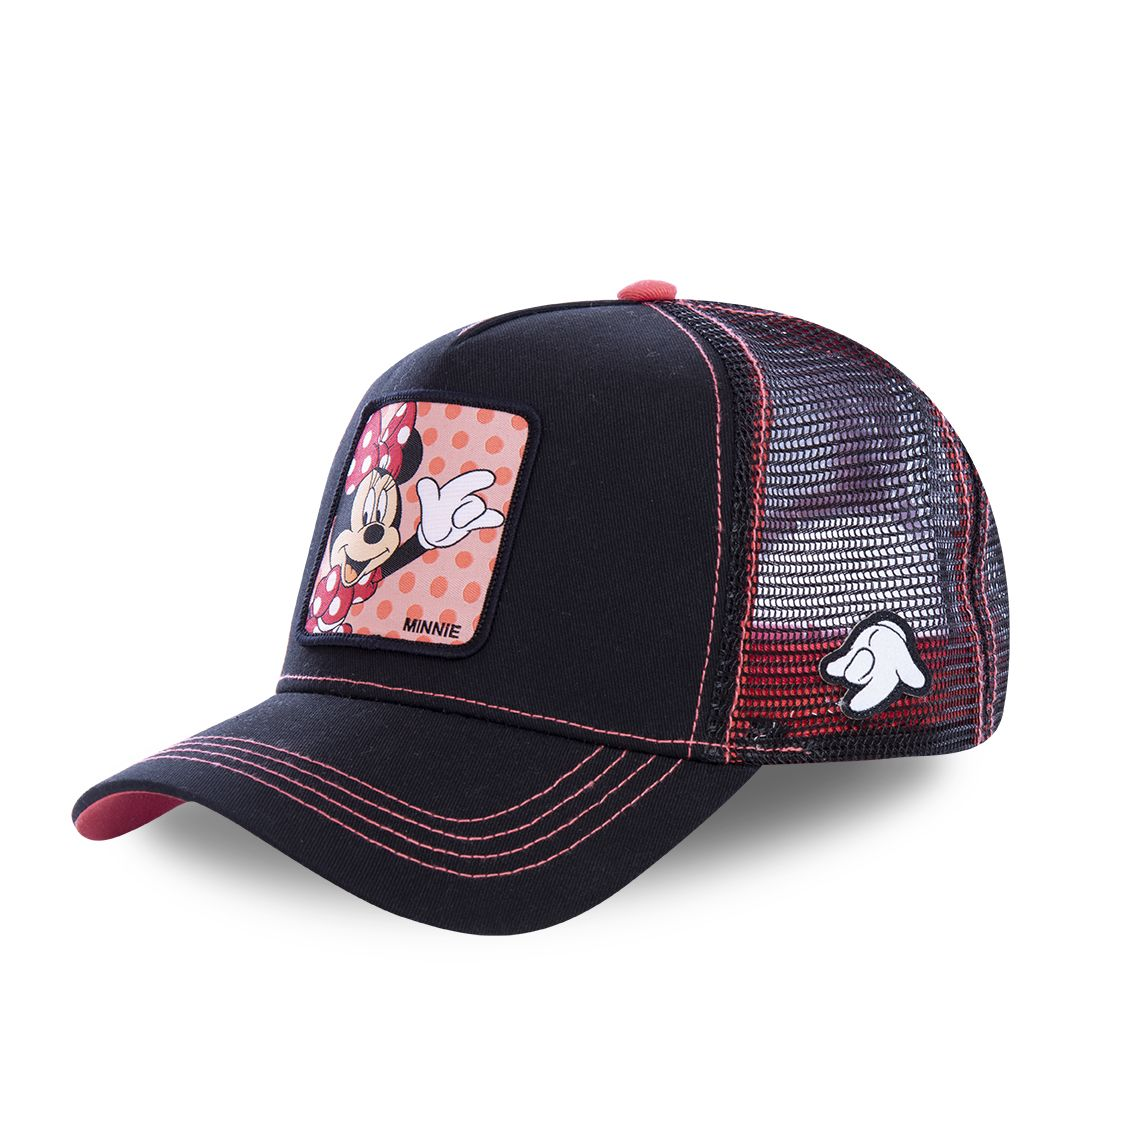 Casquette capslab disney minnie noir et rose (photo)